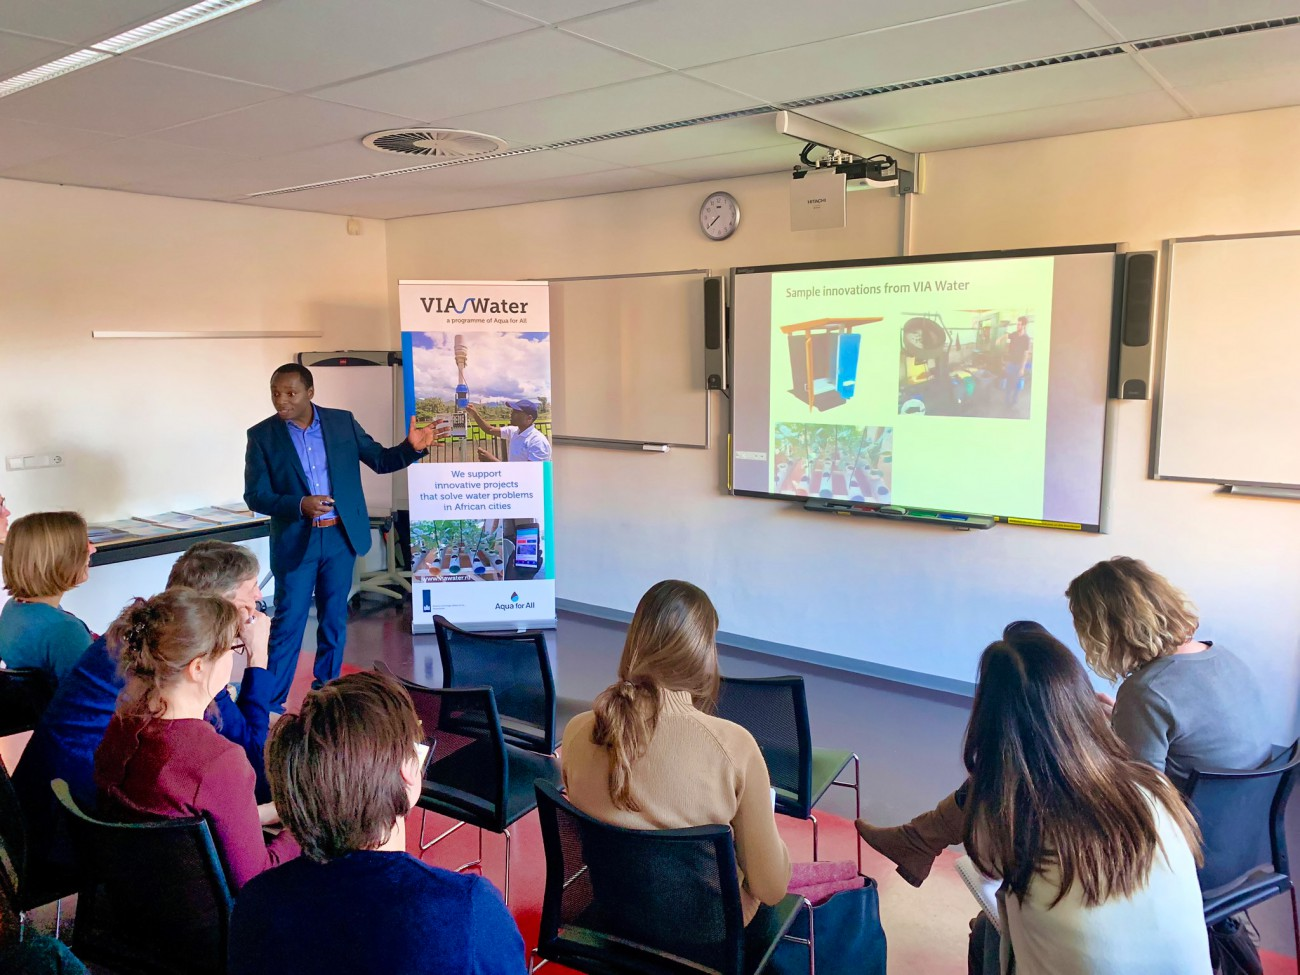 Silas presenting at Station 1 at the Workshop on Water Innovation in Africa at IHE Delft